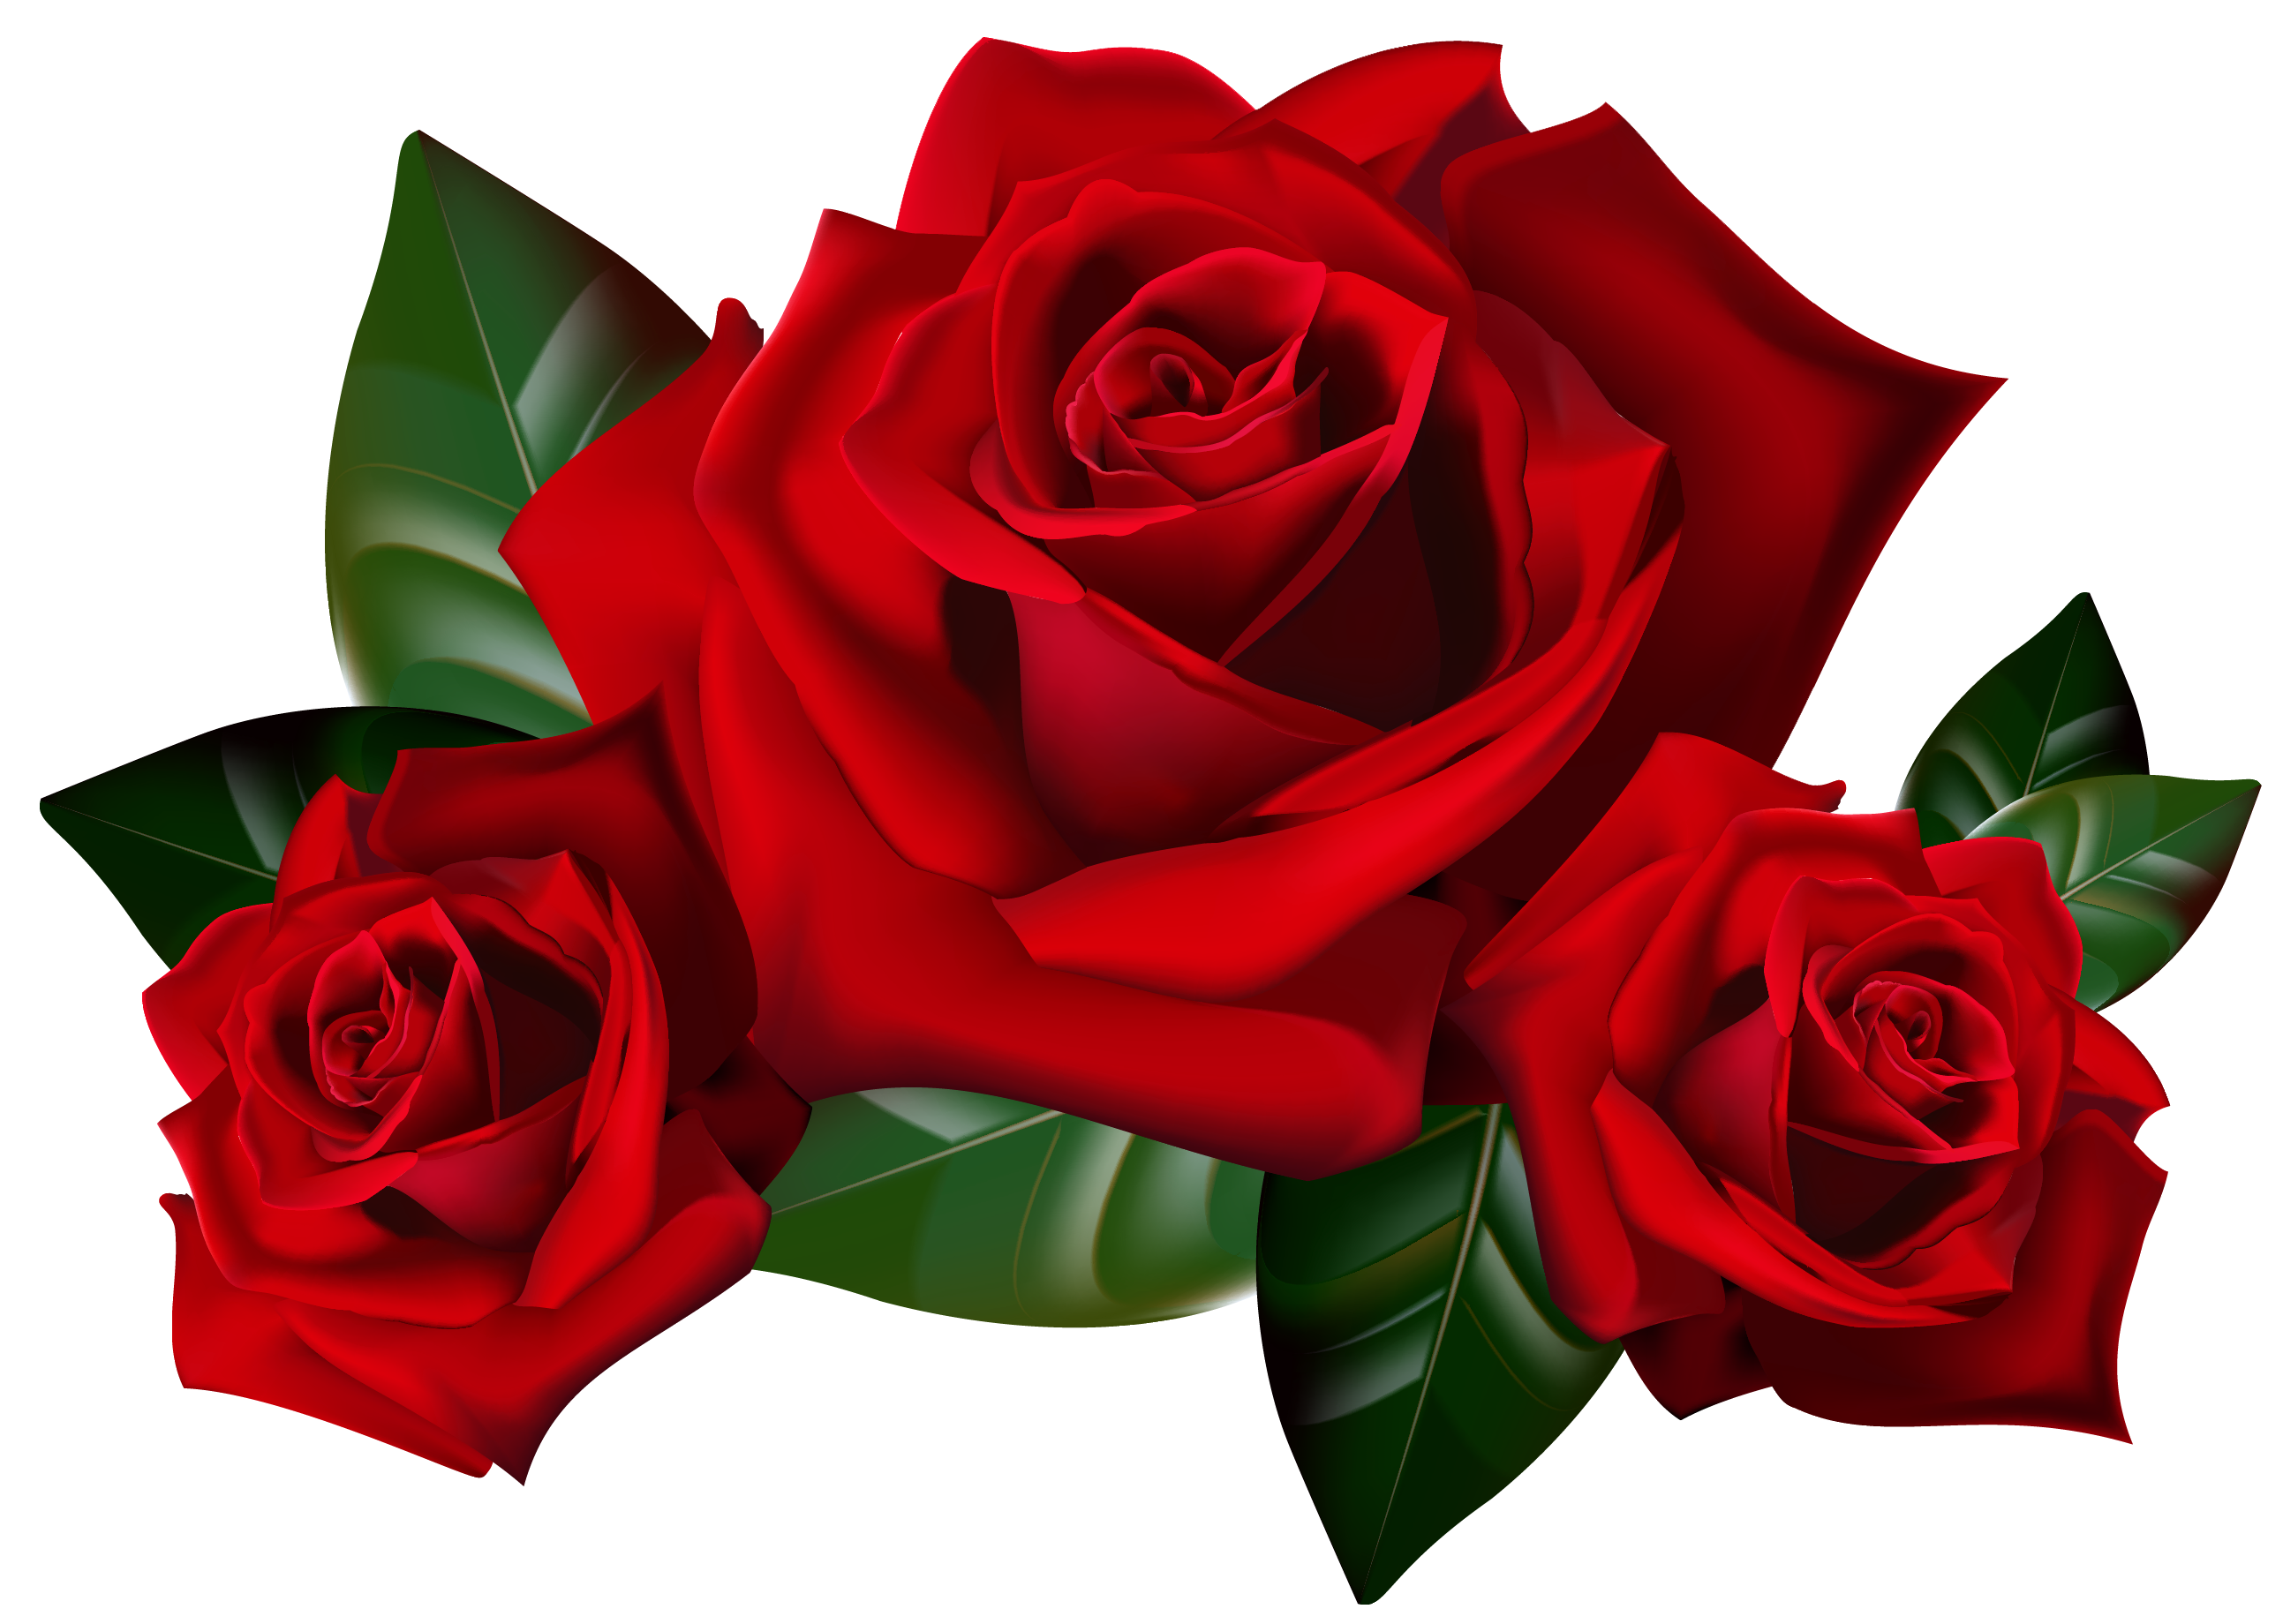 Red Rose clipart #5, Download drawings